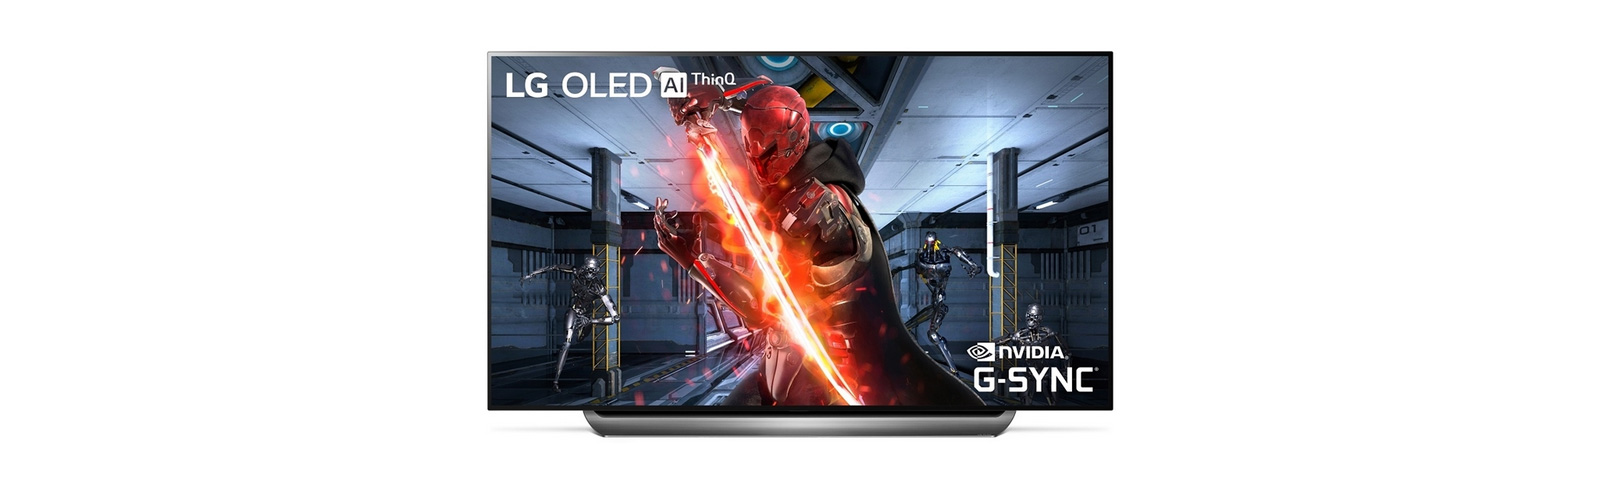 LG OLED TVs to get a G-SYNC compatibility feature for up to 120Hz refresh rate